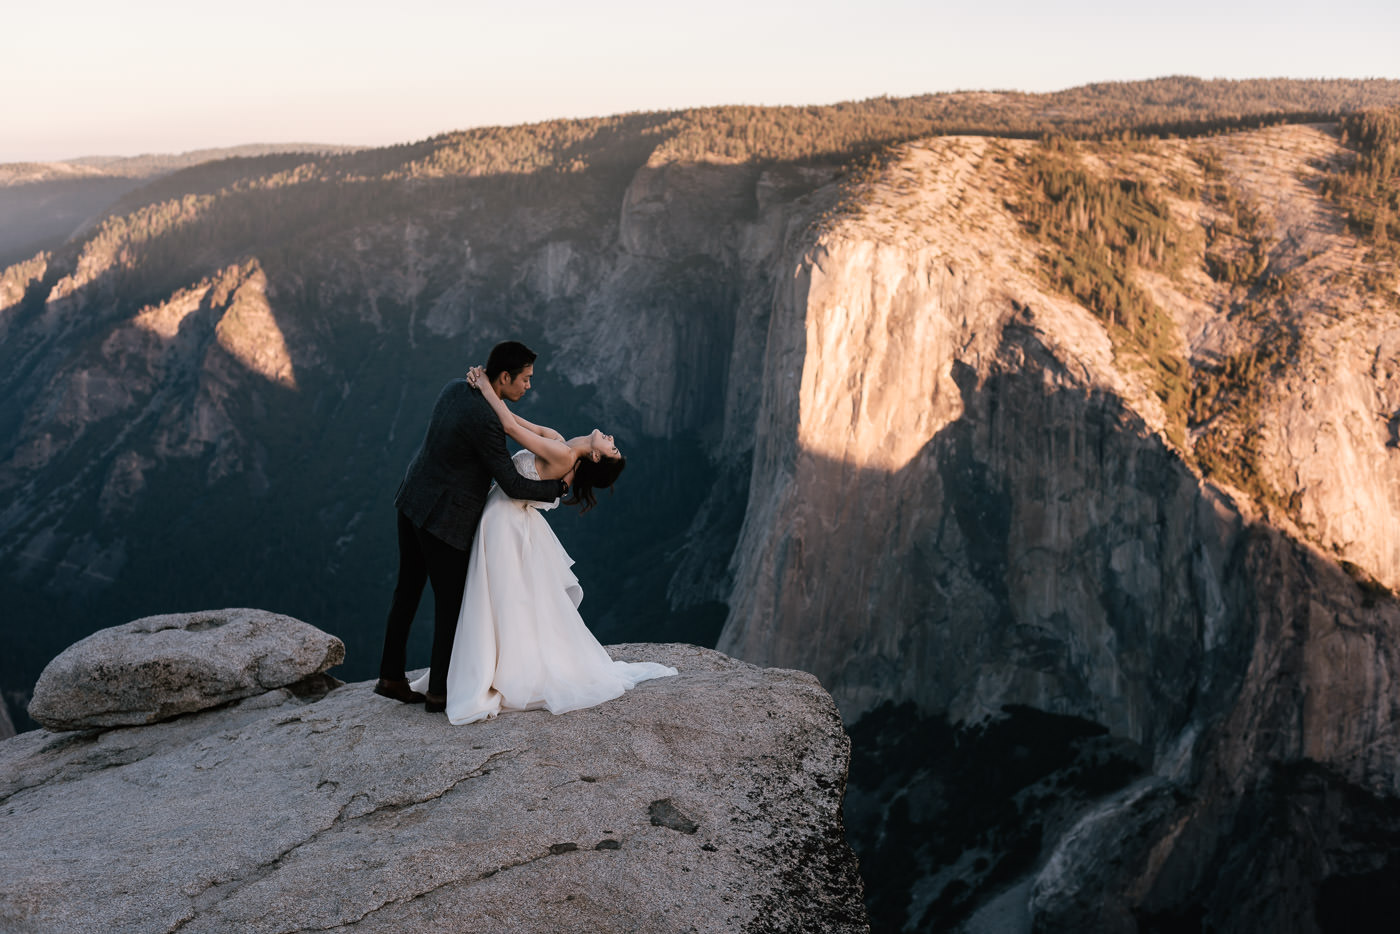 Wilderness elopement adventures for wandering hearts.